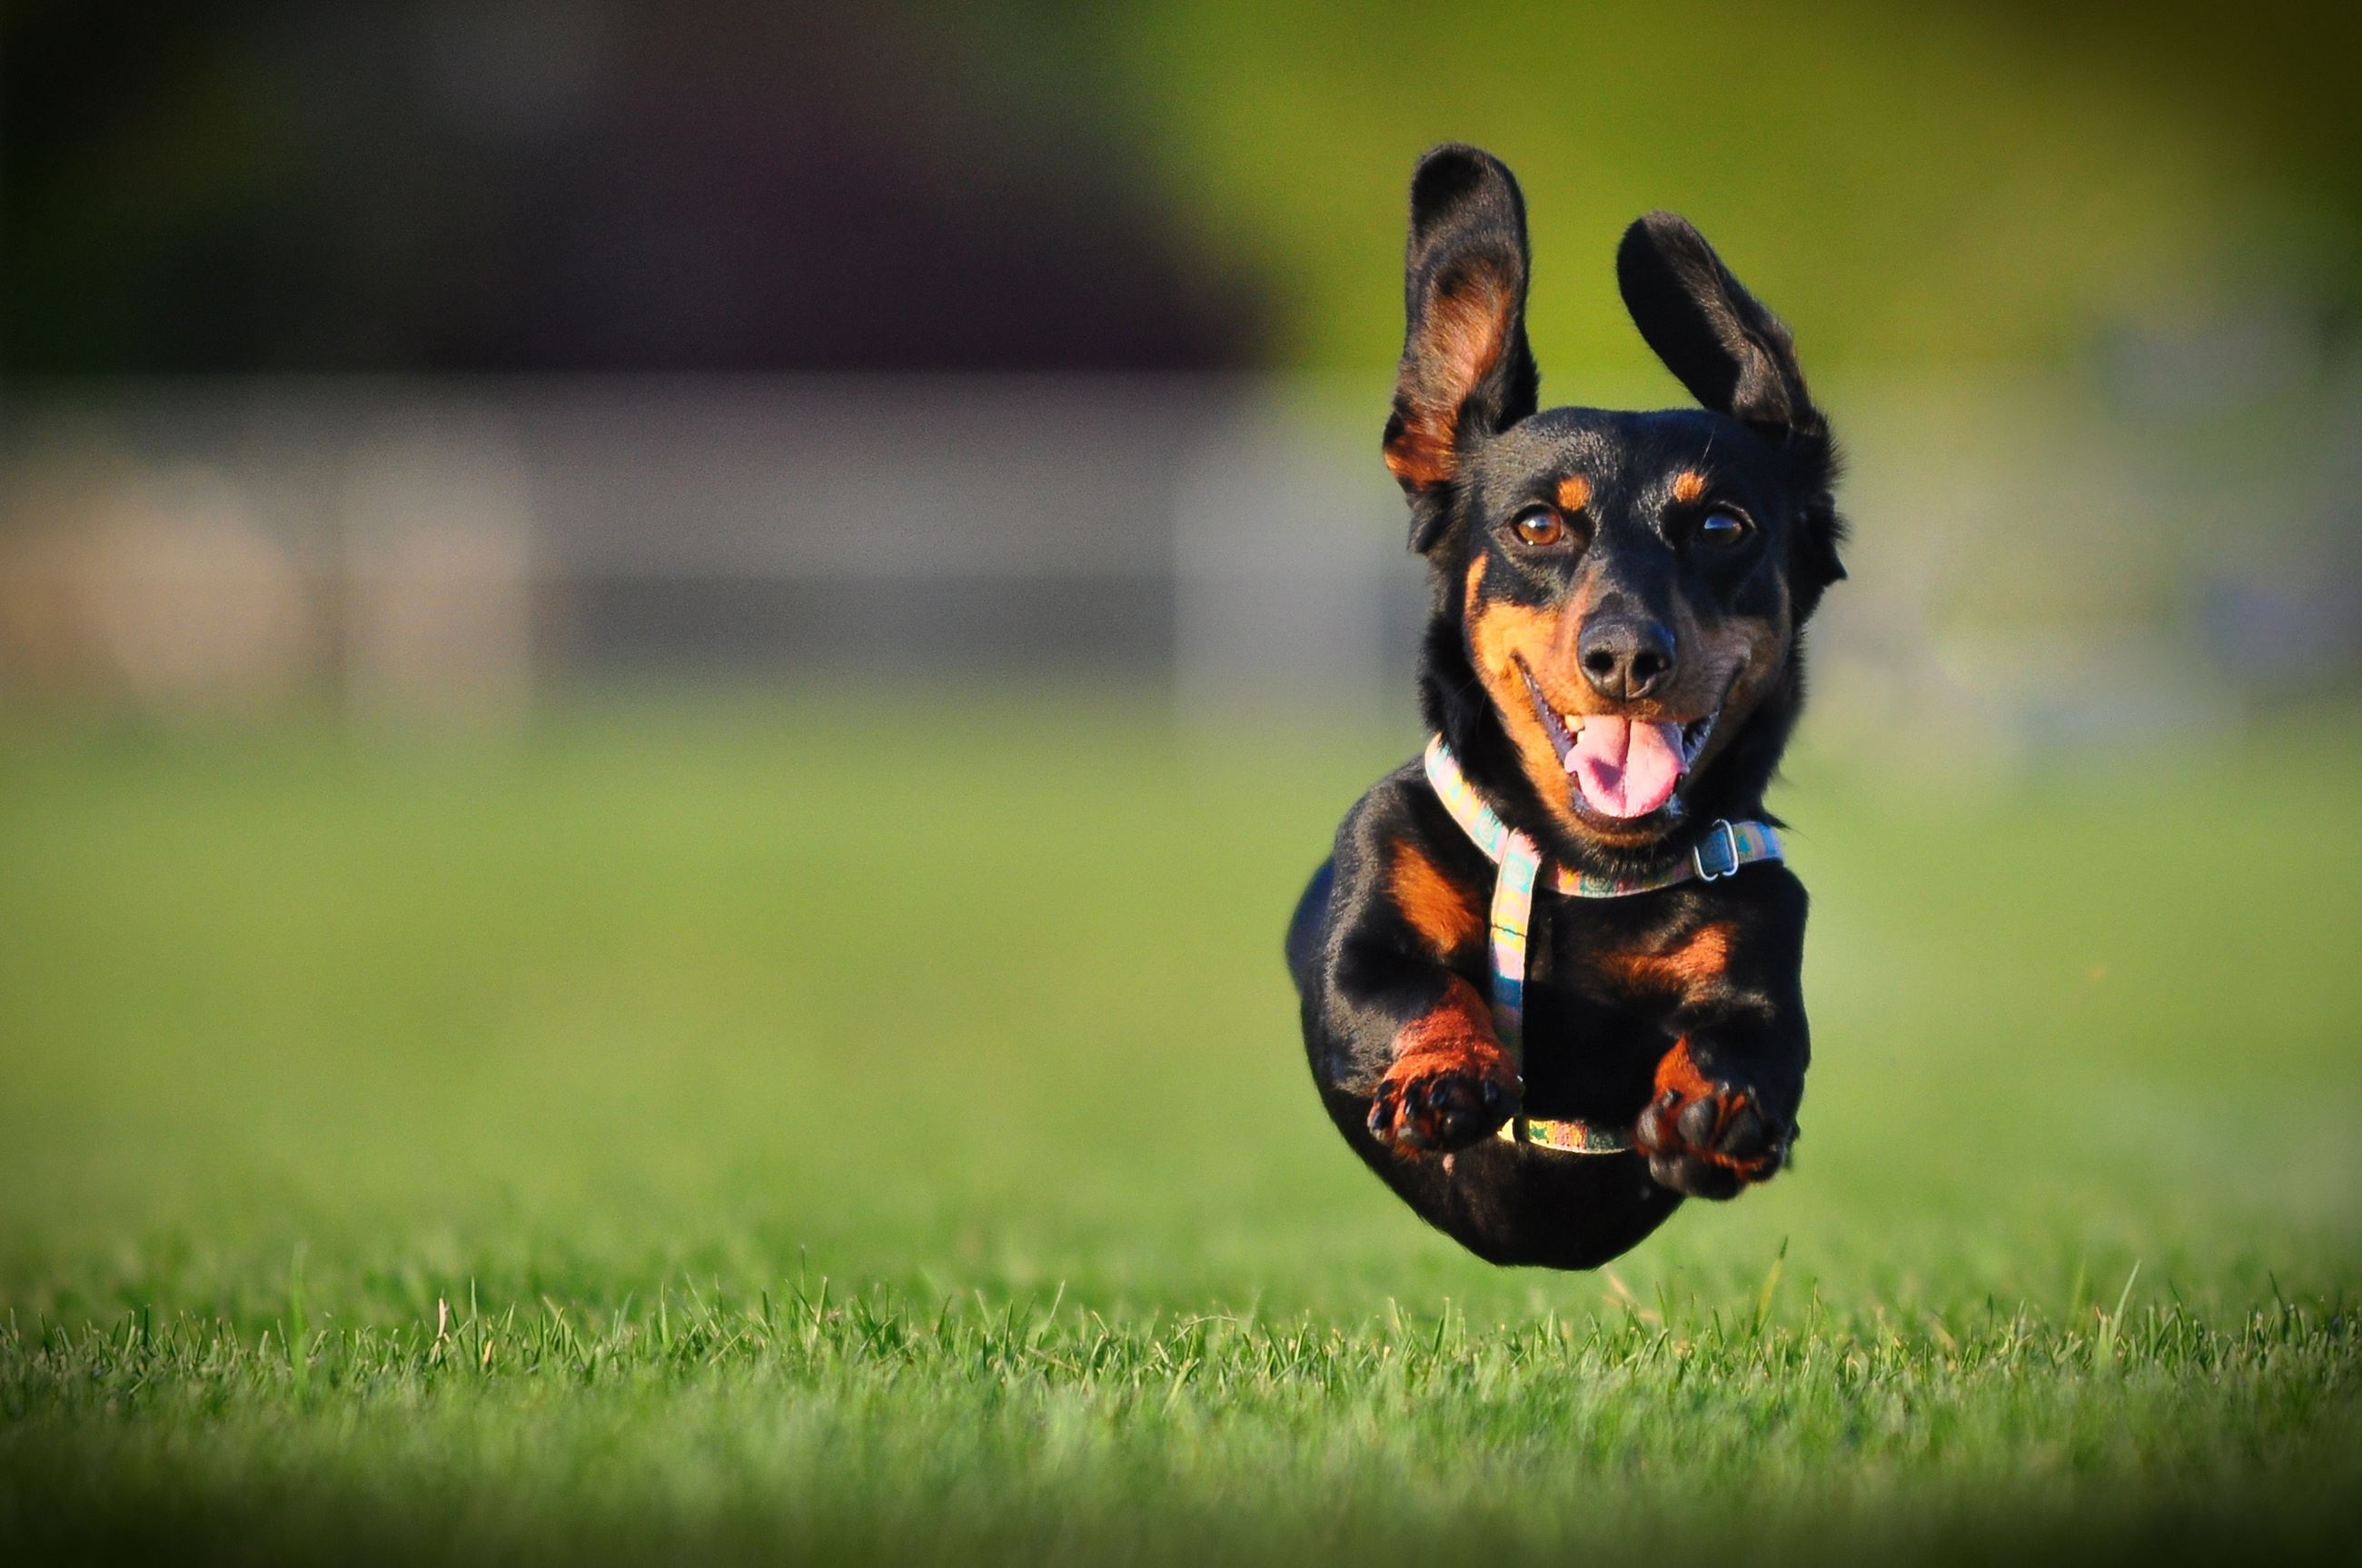 bigstock-dog-running-6241804